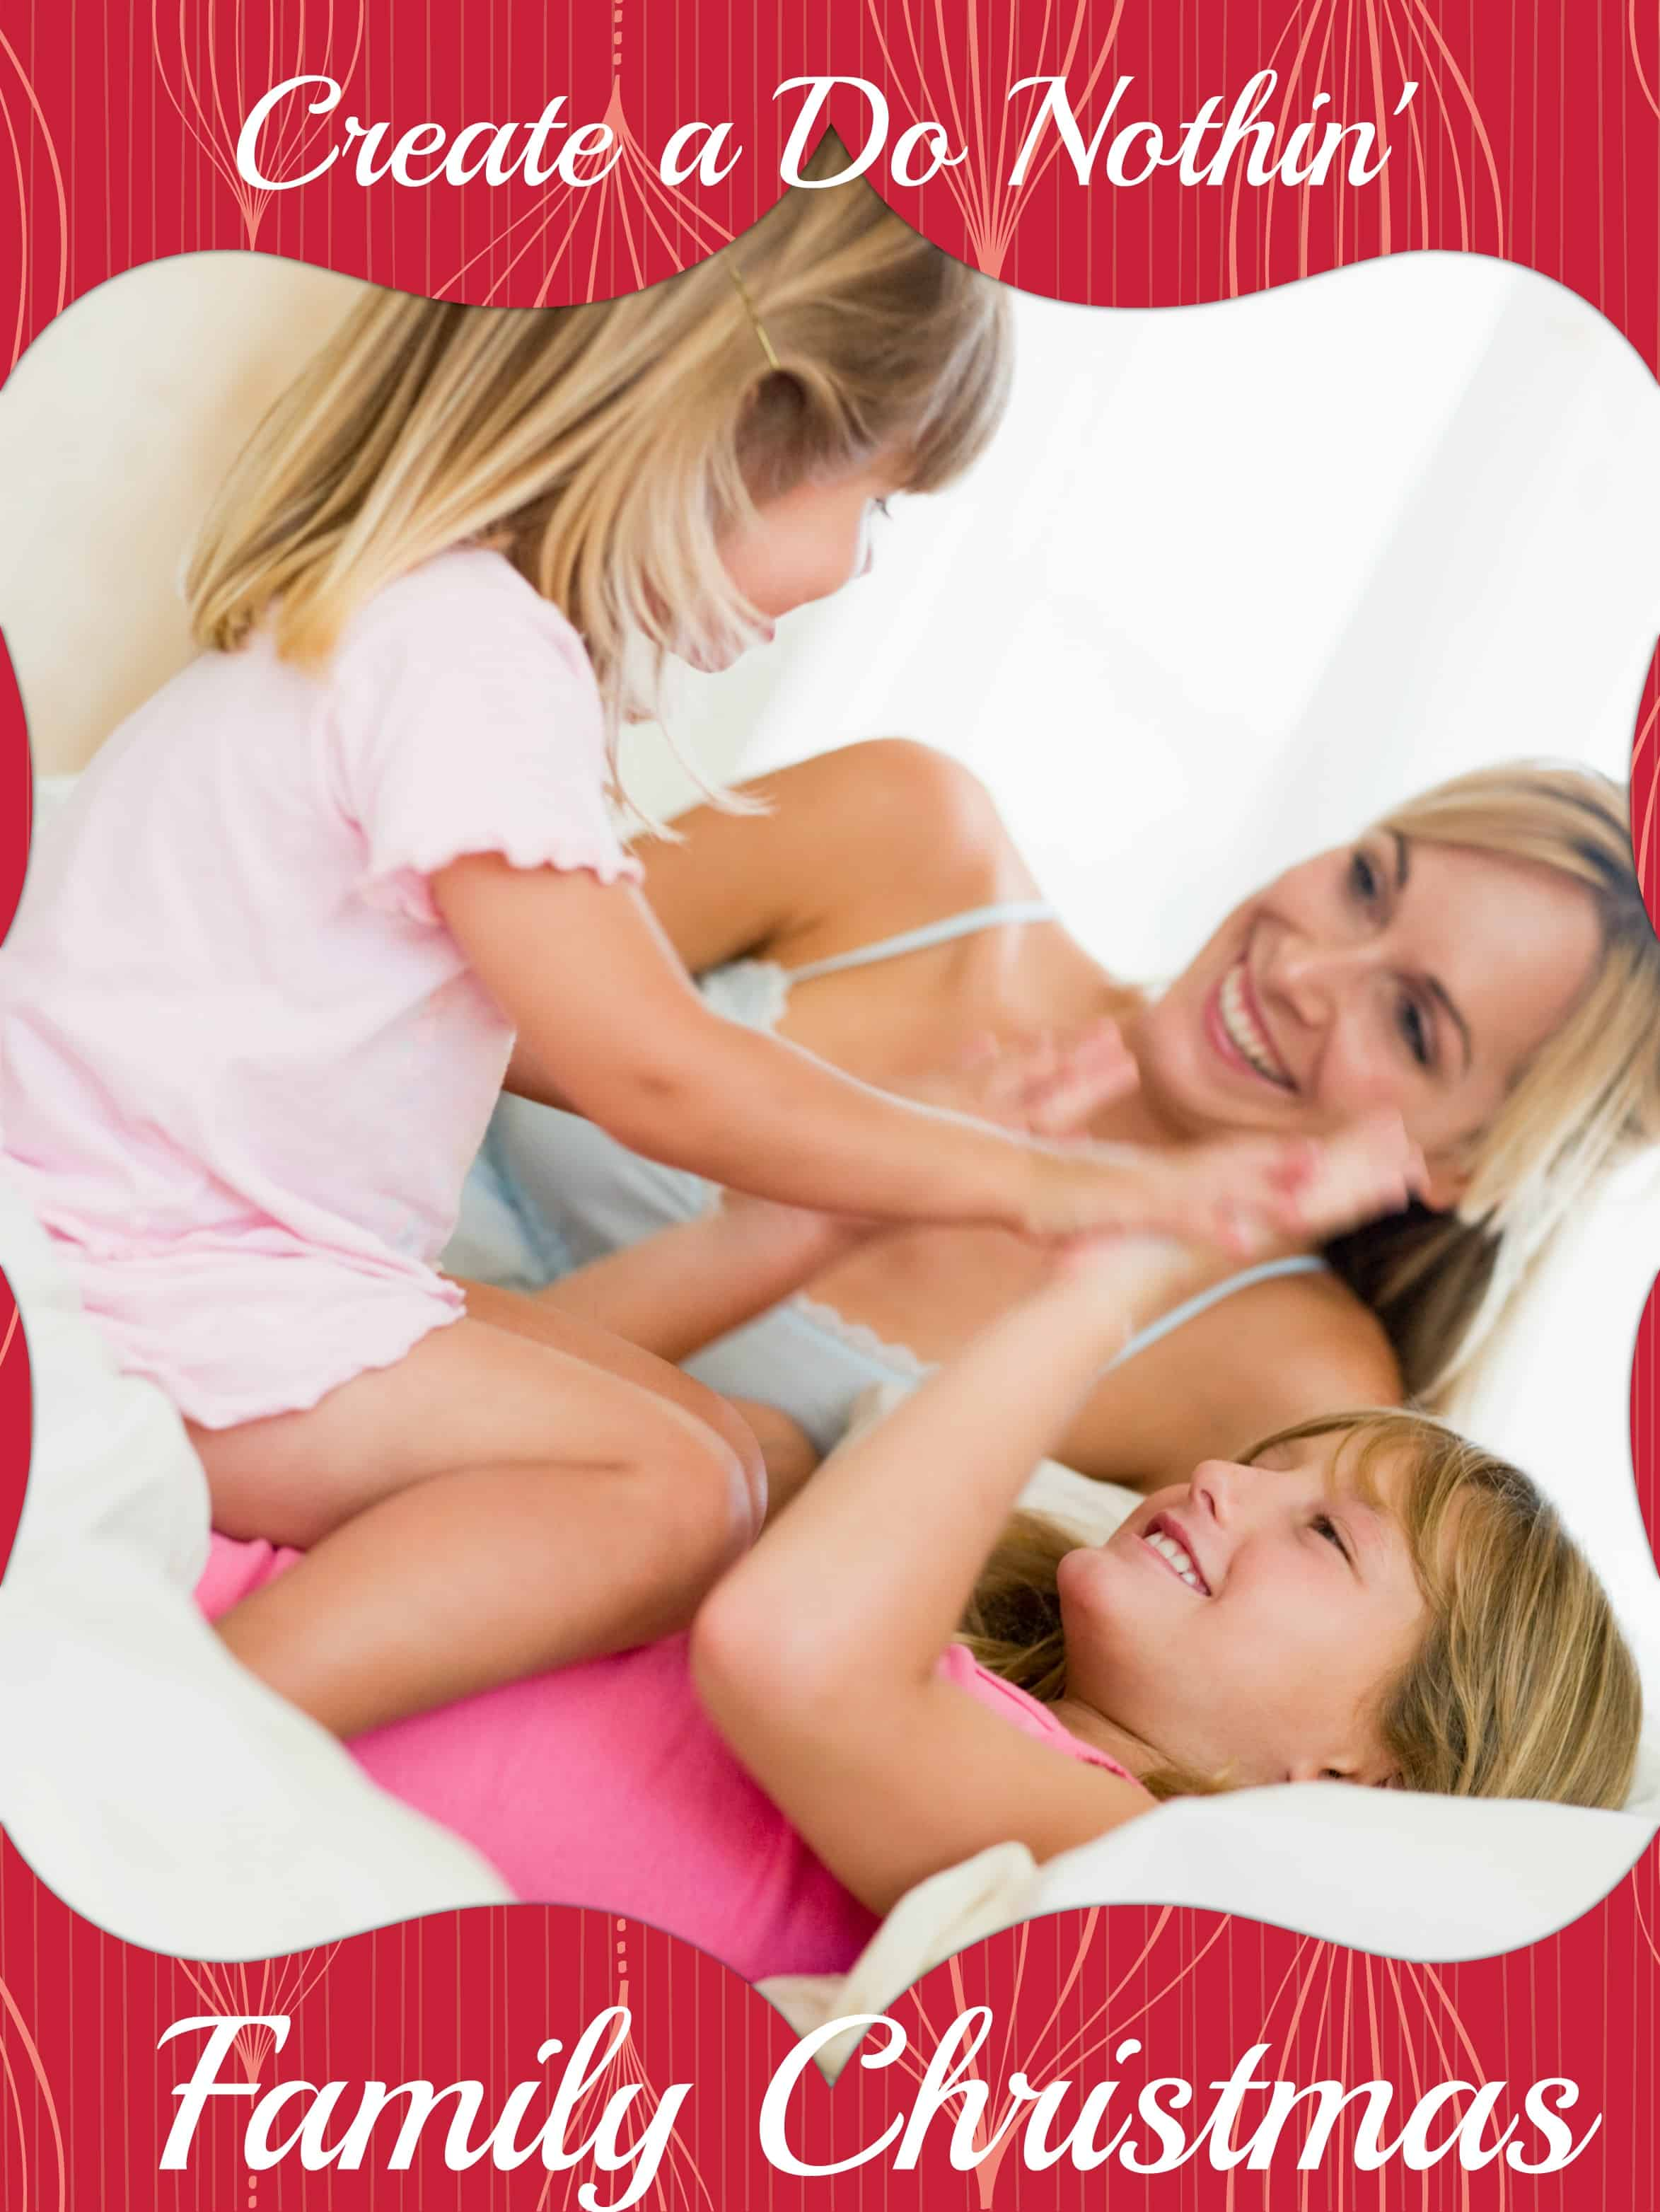 donothinwoman-and-two-young-girls-in-bed-playing-and-smiling_skfg-qjabj